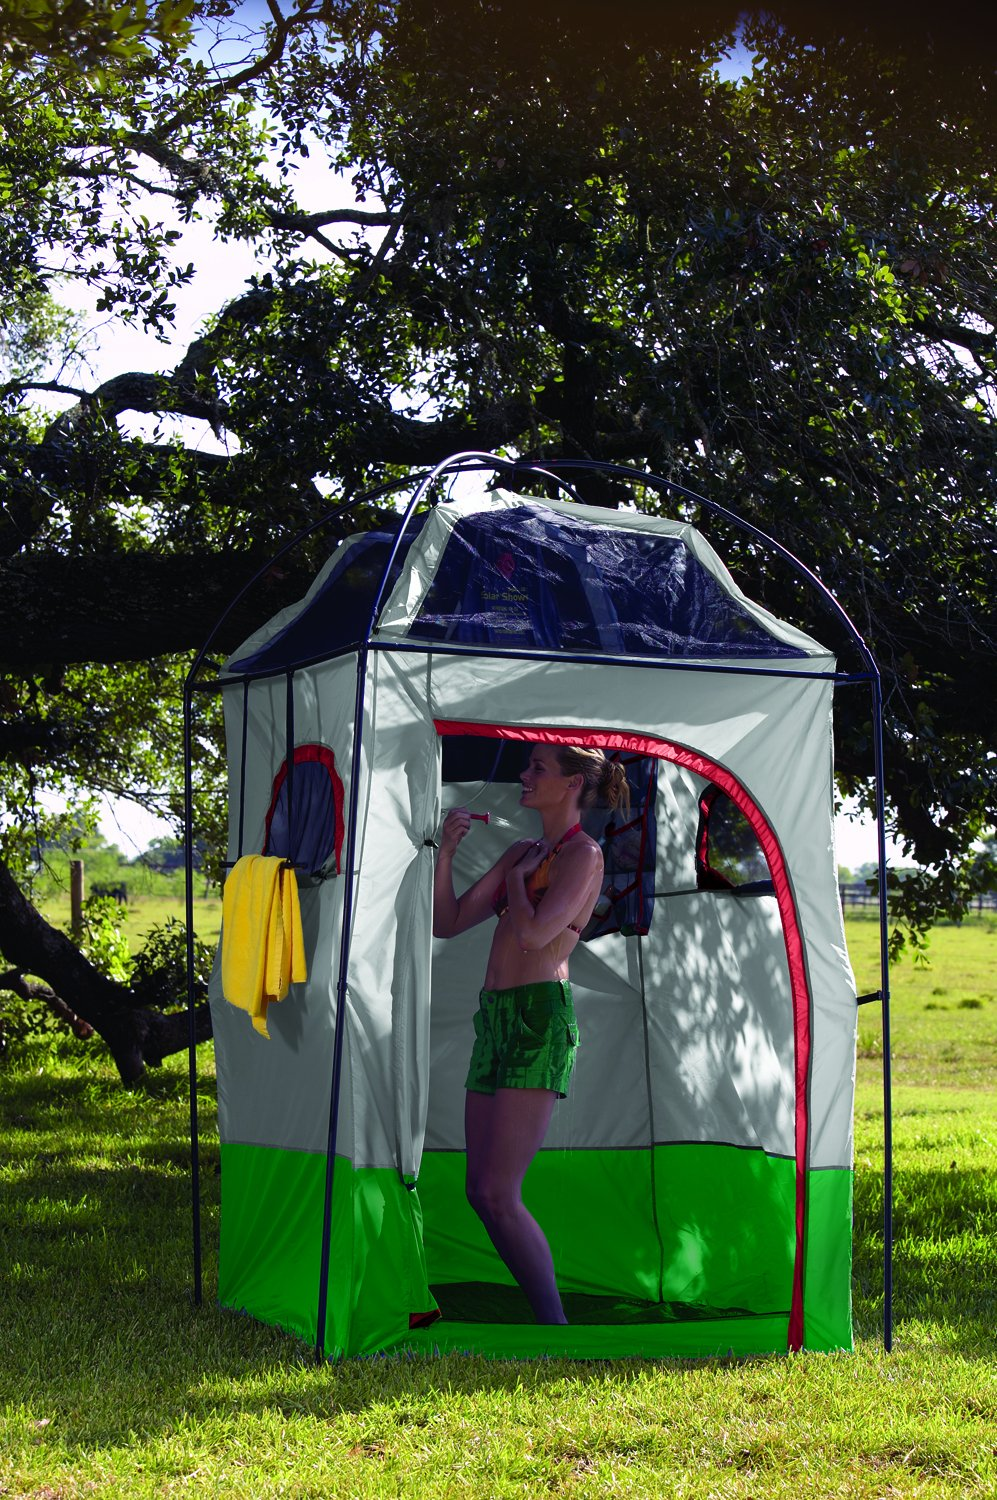 Amazon.com Texsport Instant Portable Outdoor C&ing Shower Privacy Shelter Changing Room Sports u0026 Outdoors & Amazon.com: Texsport Instant Portable Outdoor Camping Shower ...